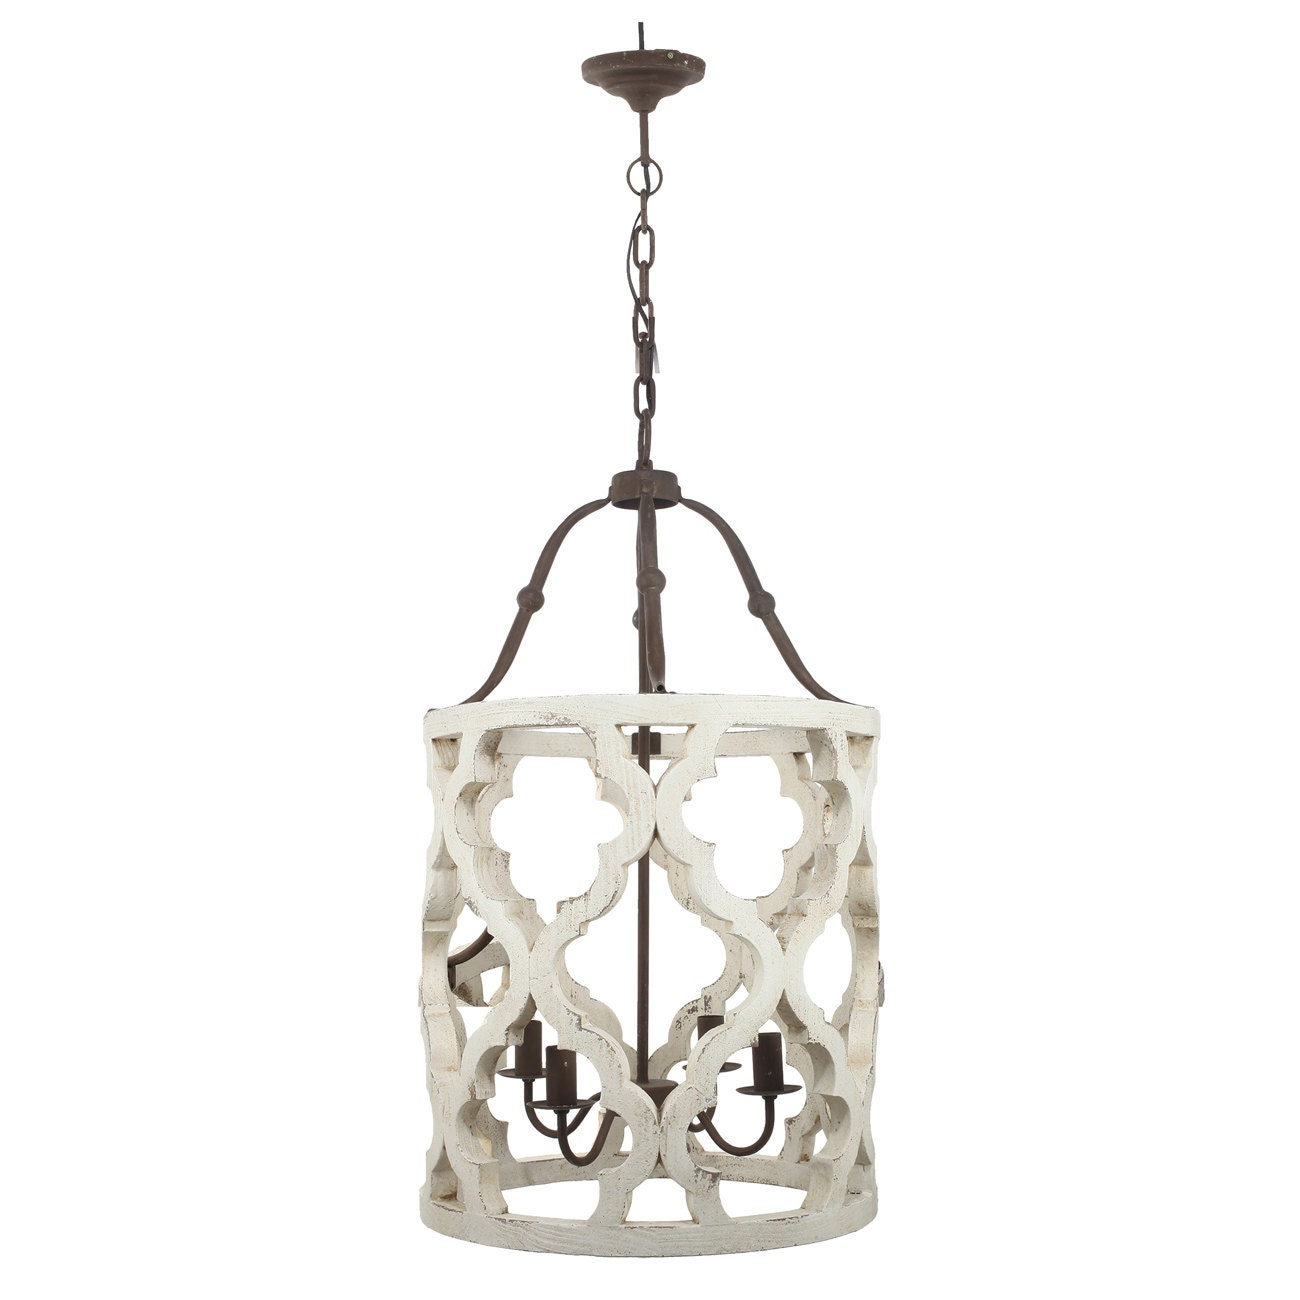 Distressed Wood Chandelier: 4 Light Quatrefoil White Distressed Chandelier Painted/French